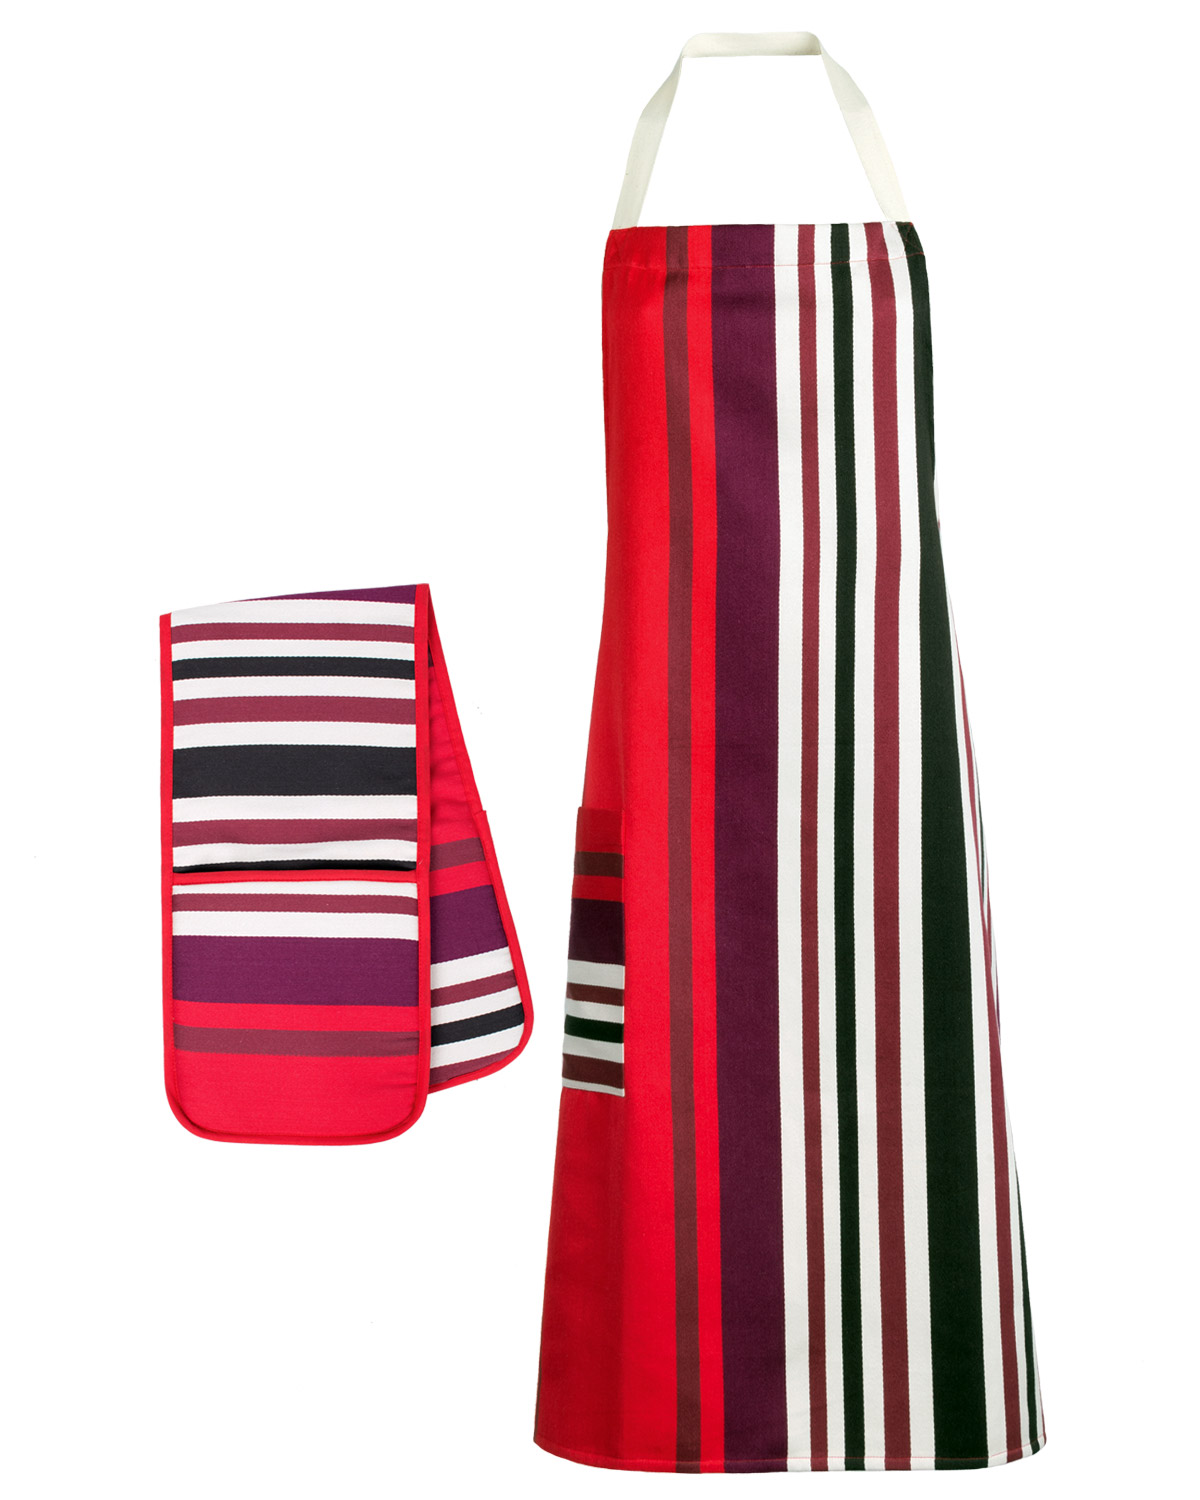 Kitchen Apron + Double Oven Gloves - Monte Carlo Cotton Red Multi Stripes